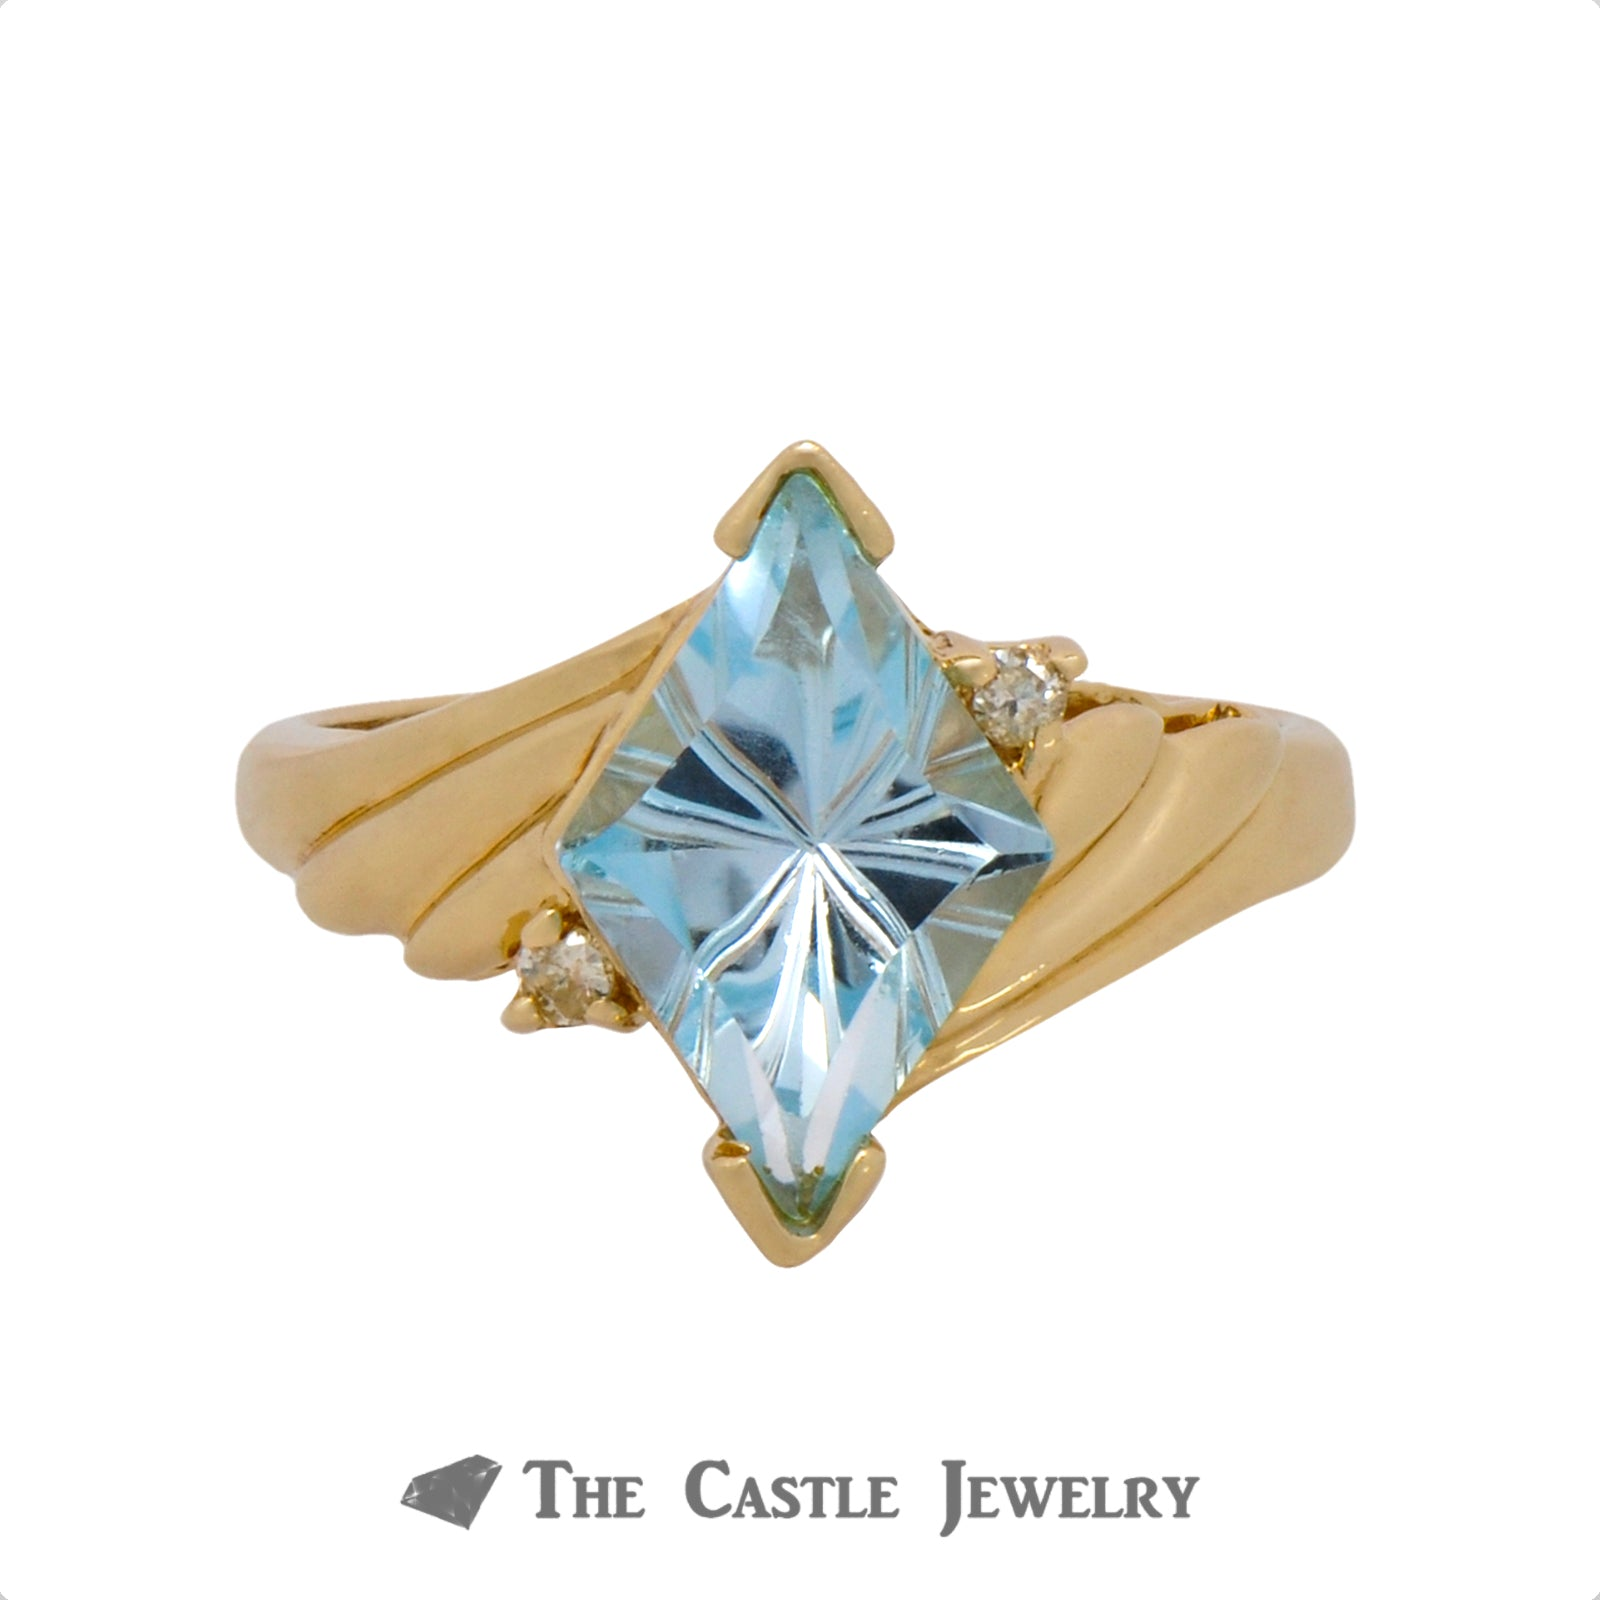 Unique Kite Cut Aquamarine Ring with Diamond Accents Crafted in Ridged 14k Yellow Gold Mounting